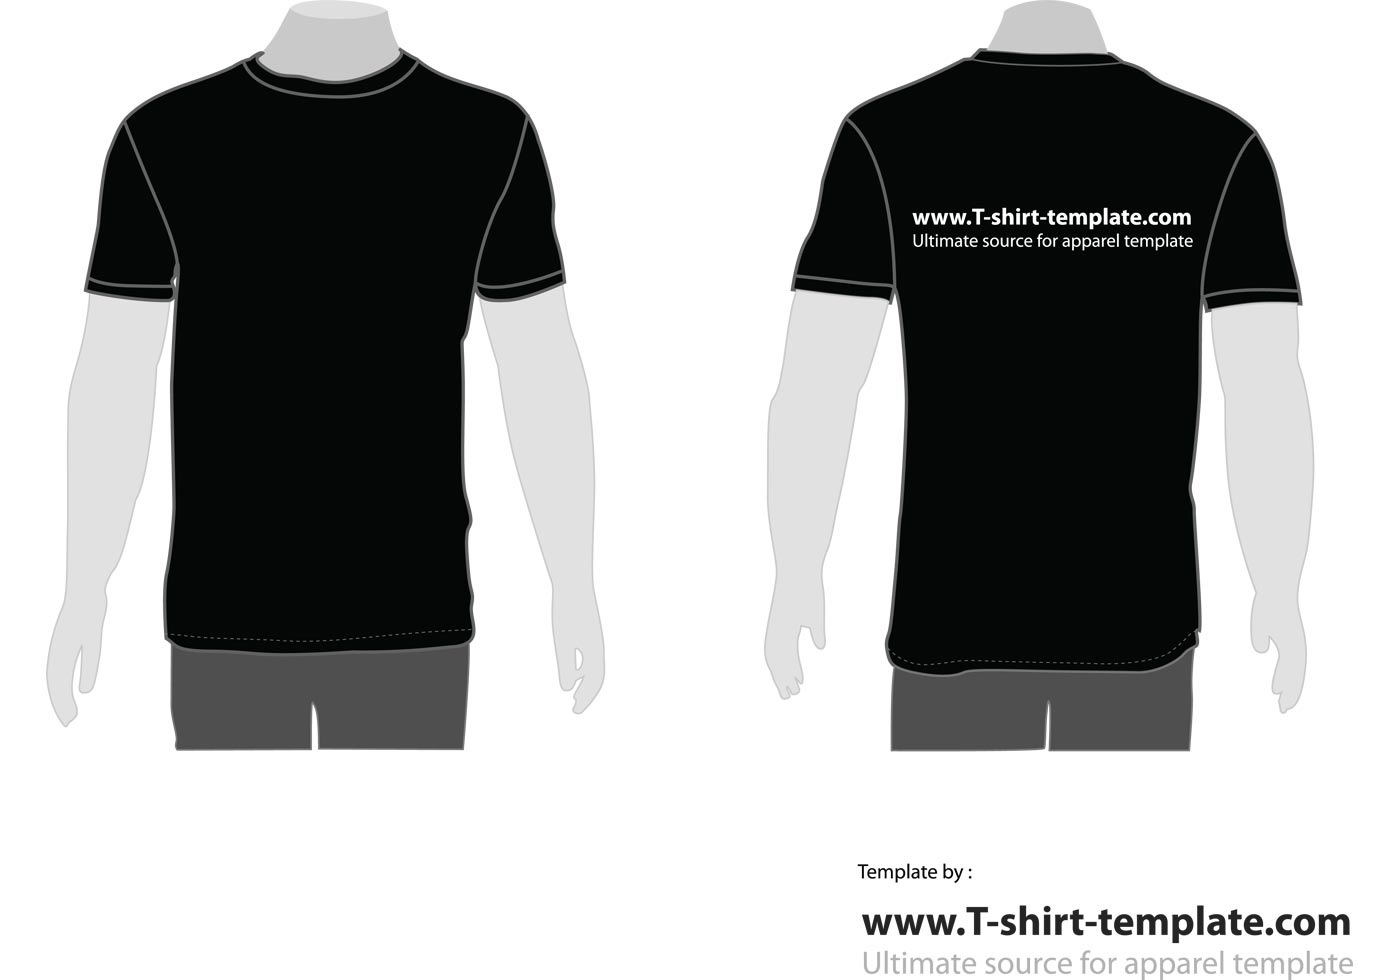 free vector moder t-shirt template front  u0026 back